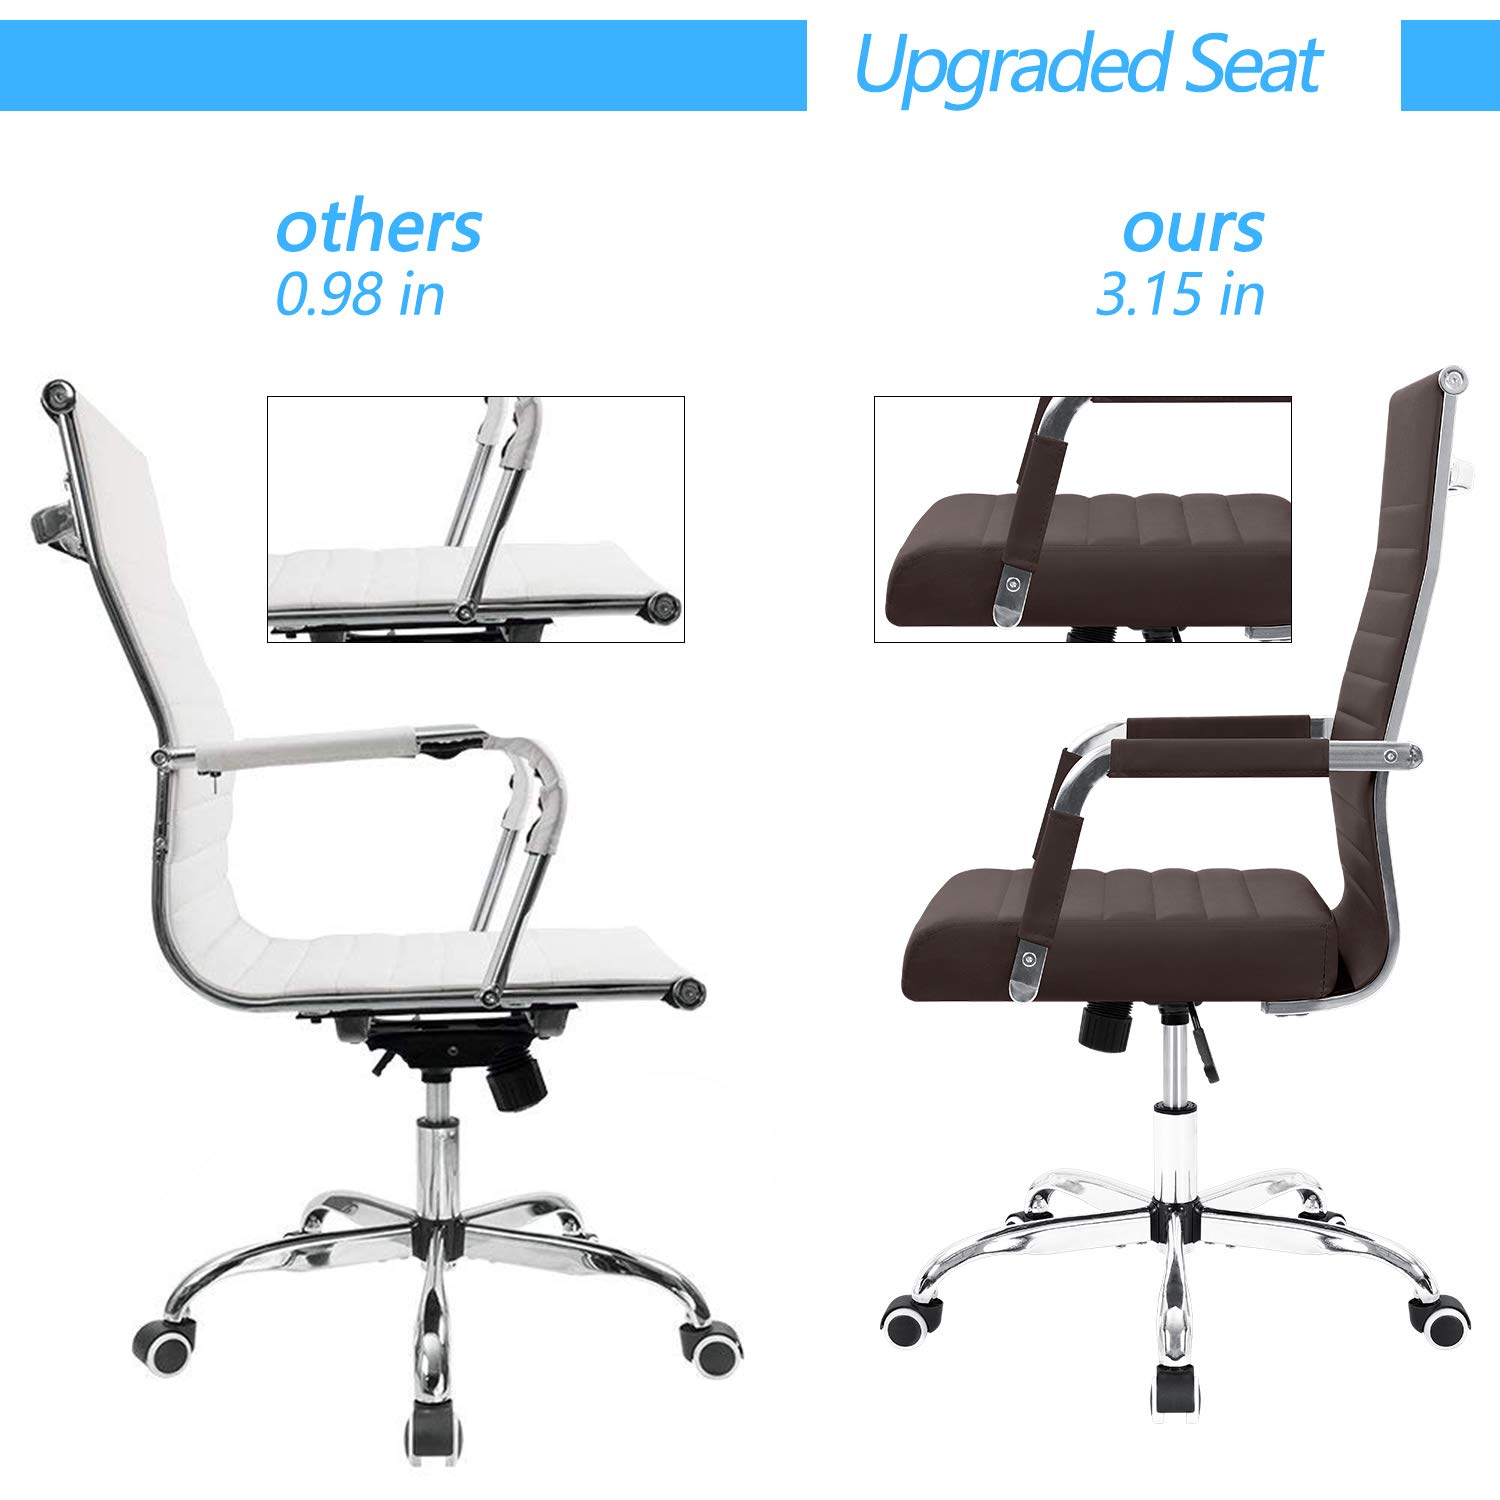 Furmax Ribbed Office Desk Chair Mid-Back Leather Executive Conference Task Chair Adjustable Swivel Chair with Arms White